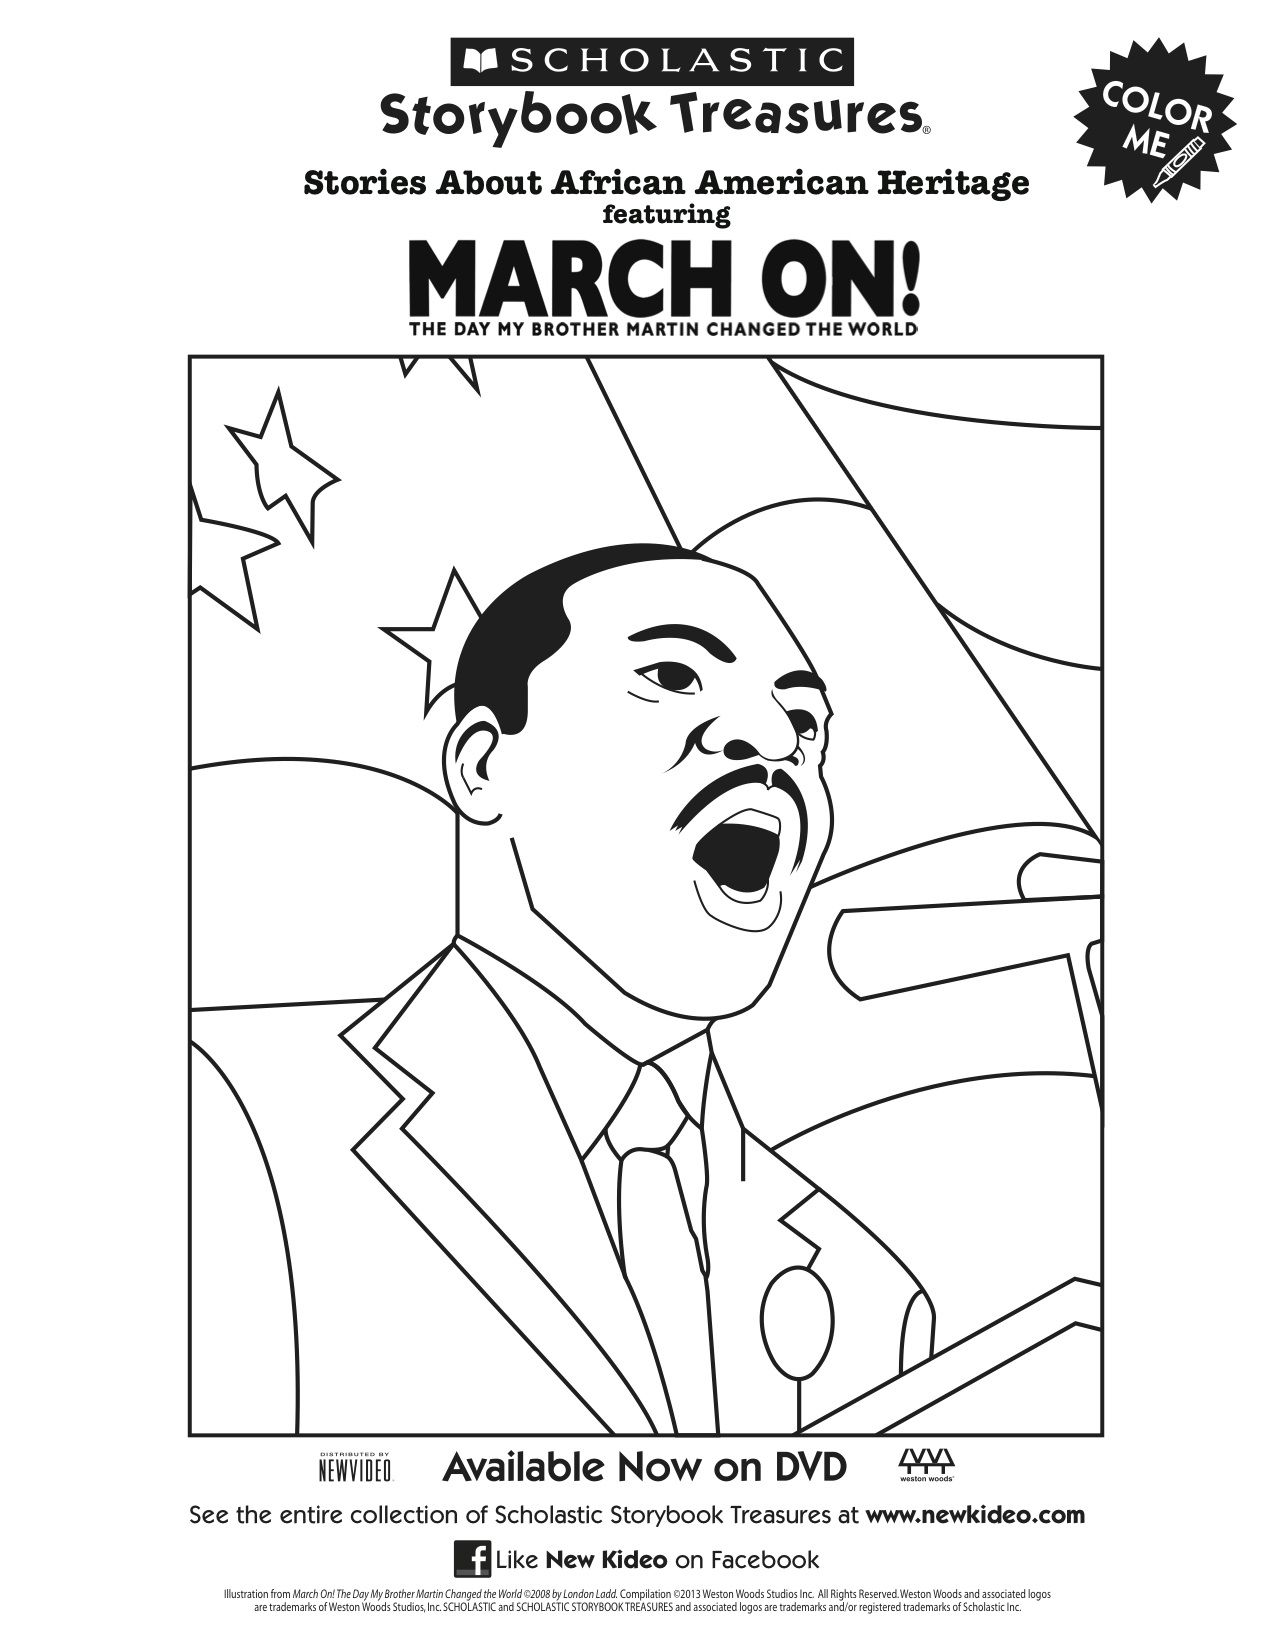 martin luther king jr coloring pages free martin luther king jr coloring pages and worksheets best free pages coloring king luther martin jr